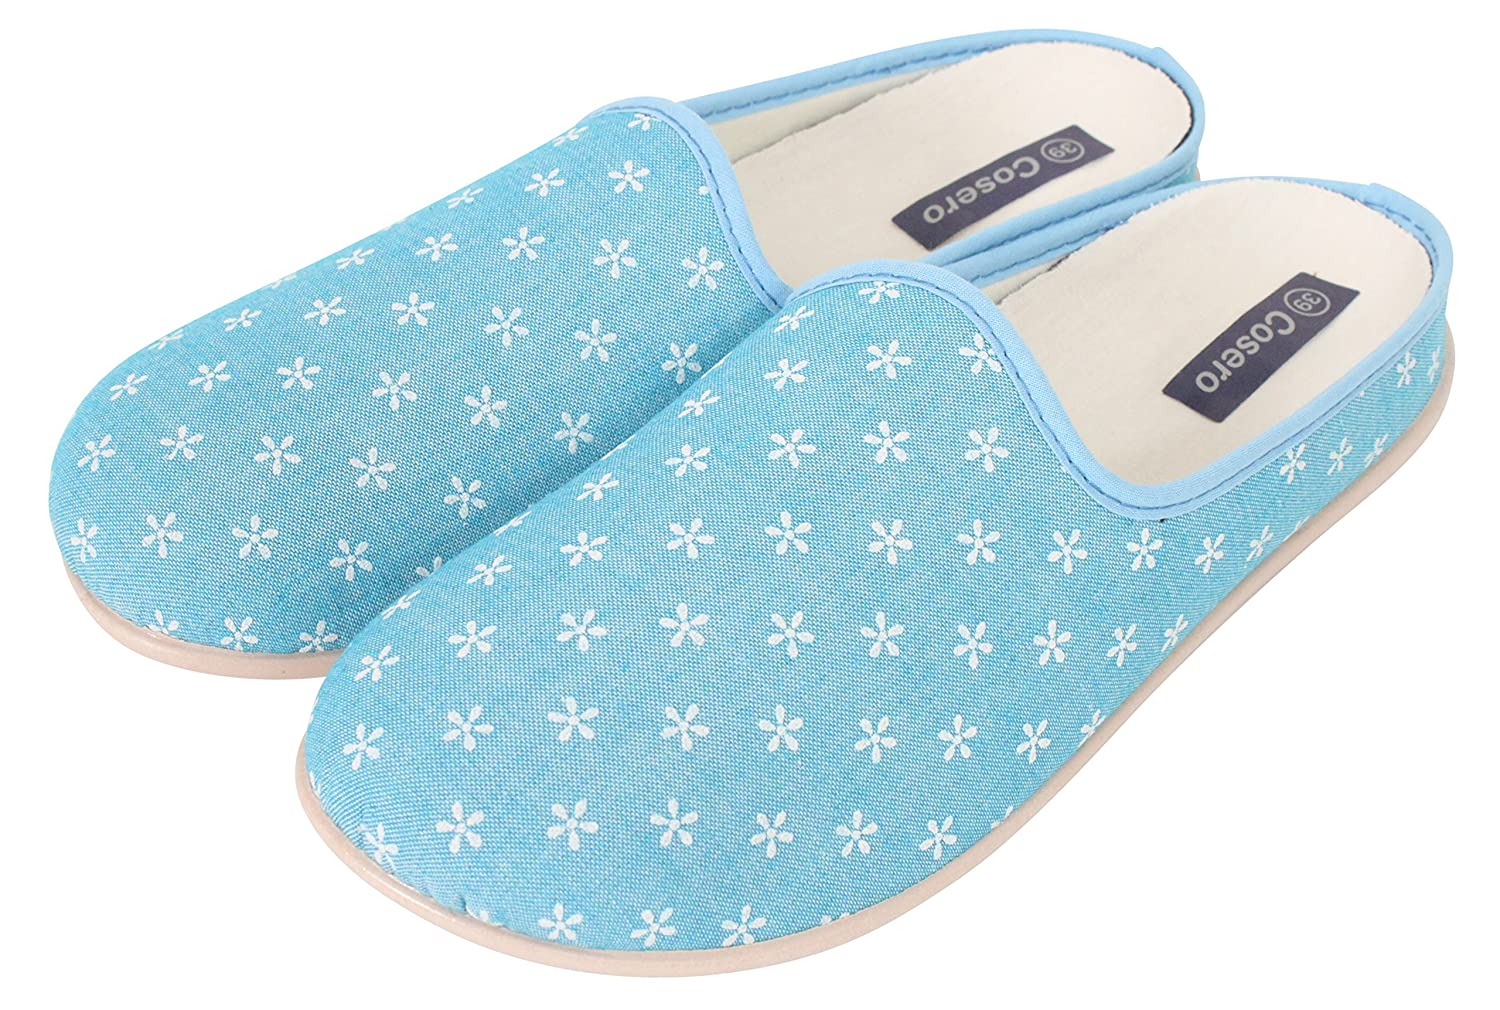 COSERO B06XJ3YMC8 , , Chaussons pour COSERO femme Türkis 04e0001 - therethere.space